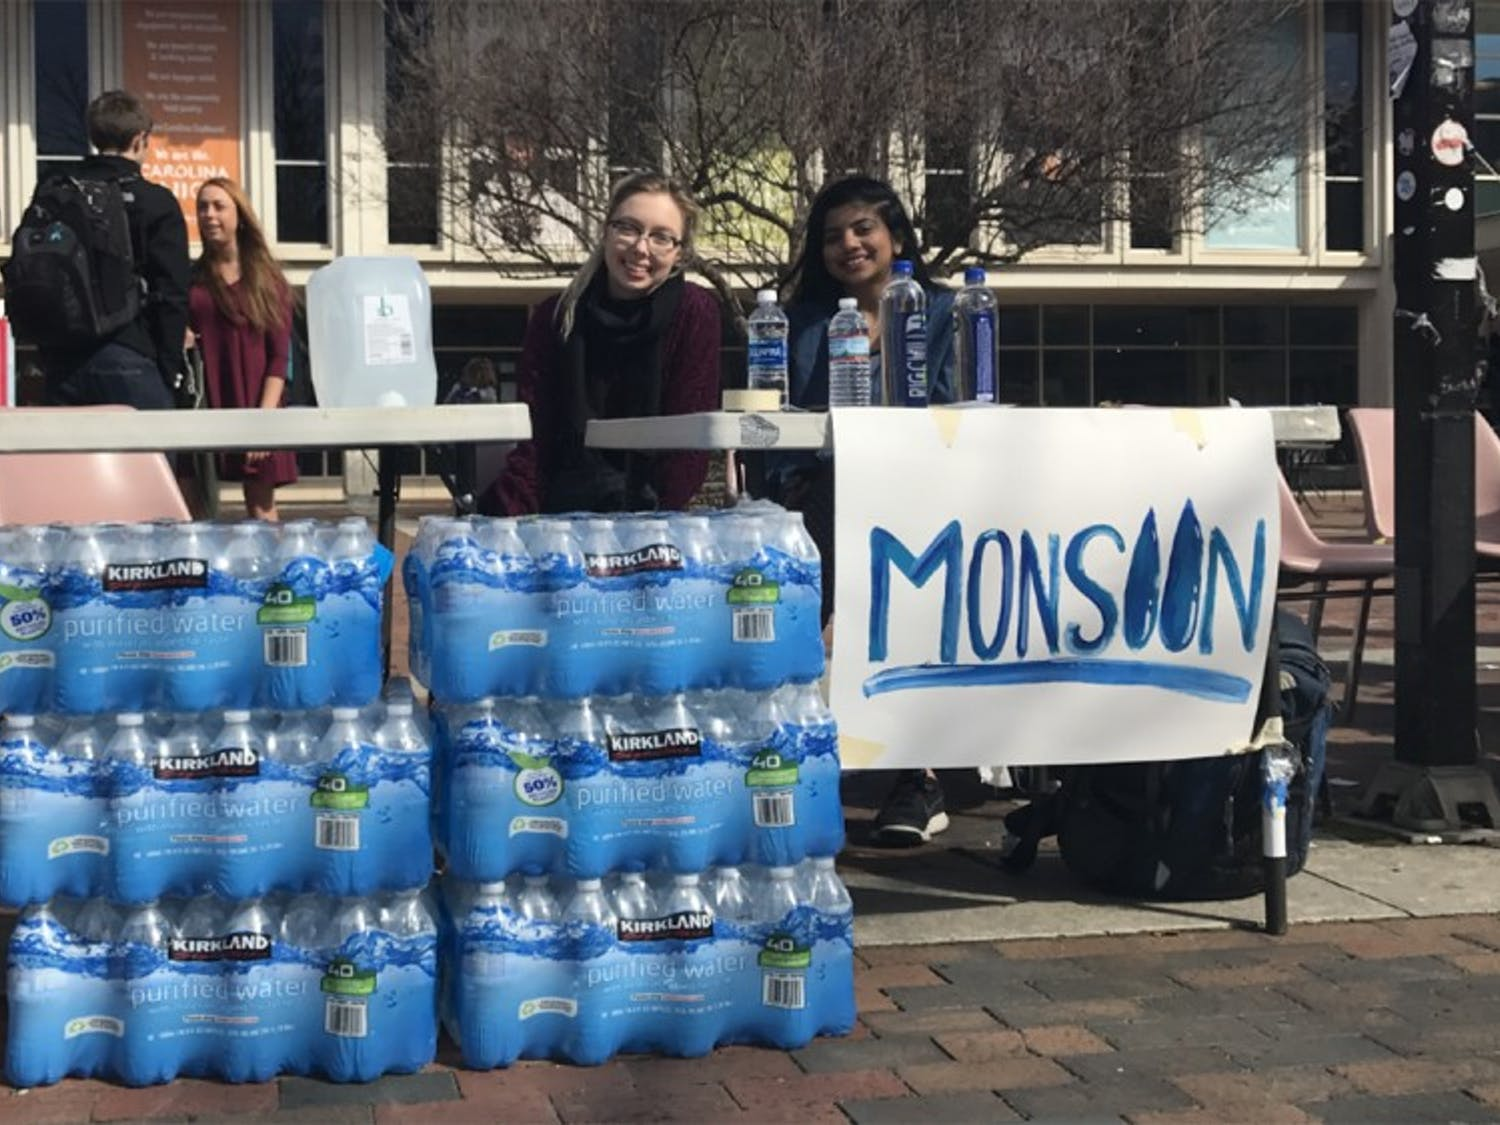 (From left) Juniors Allory Vors and Shilpa Kancharla collect water bottles on behalf of Monsoon to be sent to Flint, Mich., for relief.